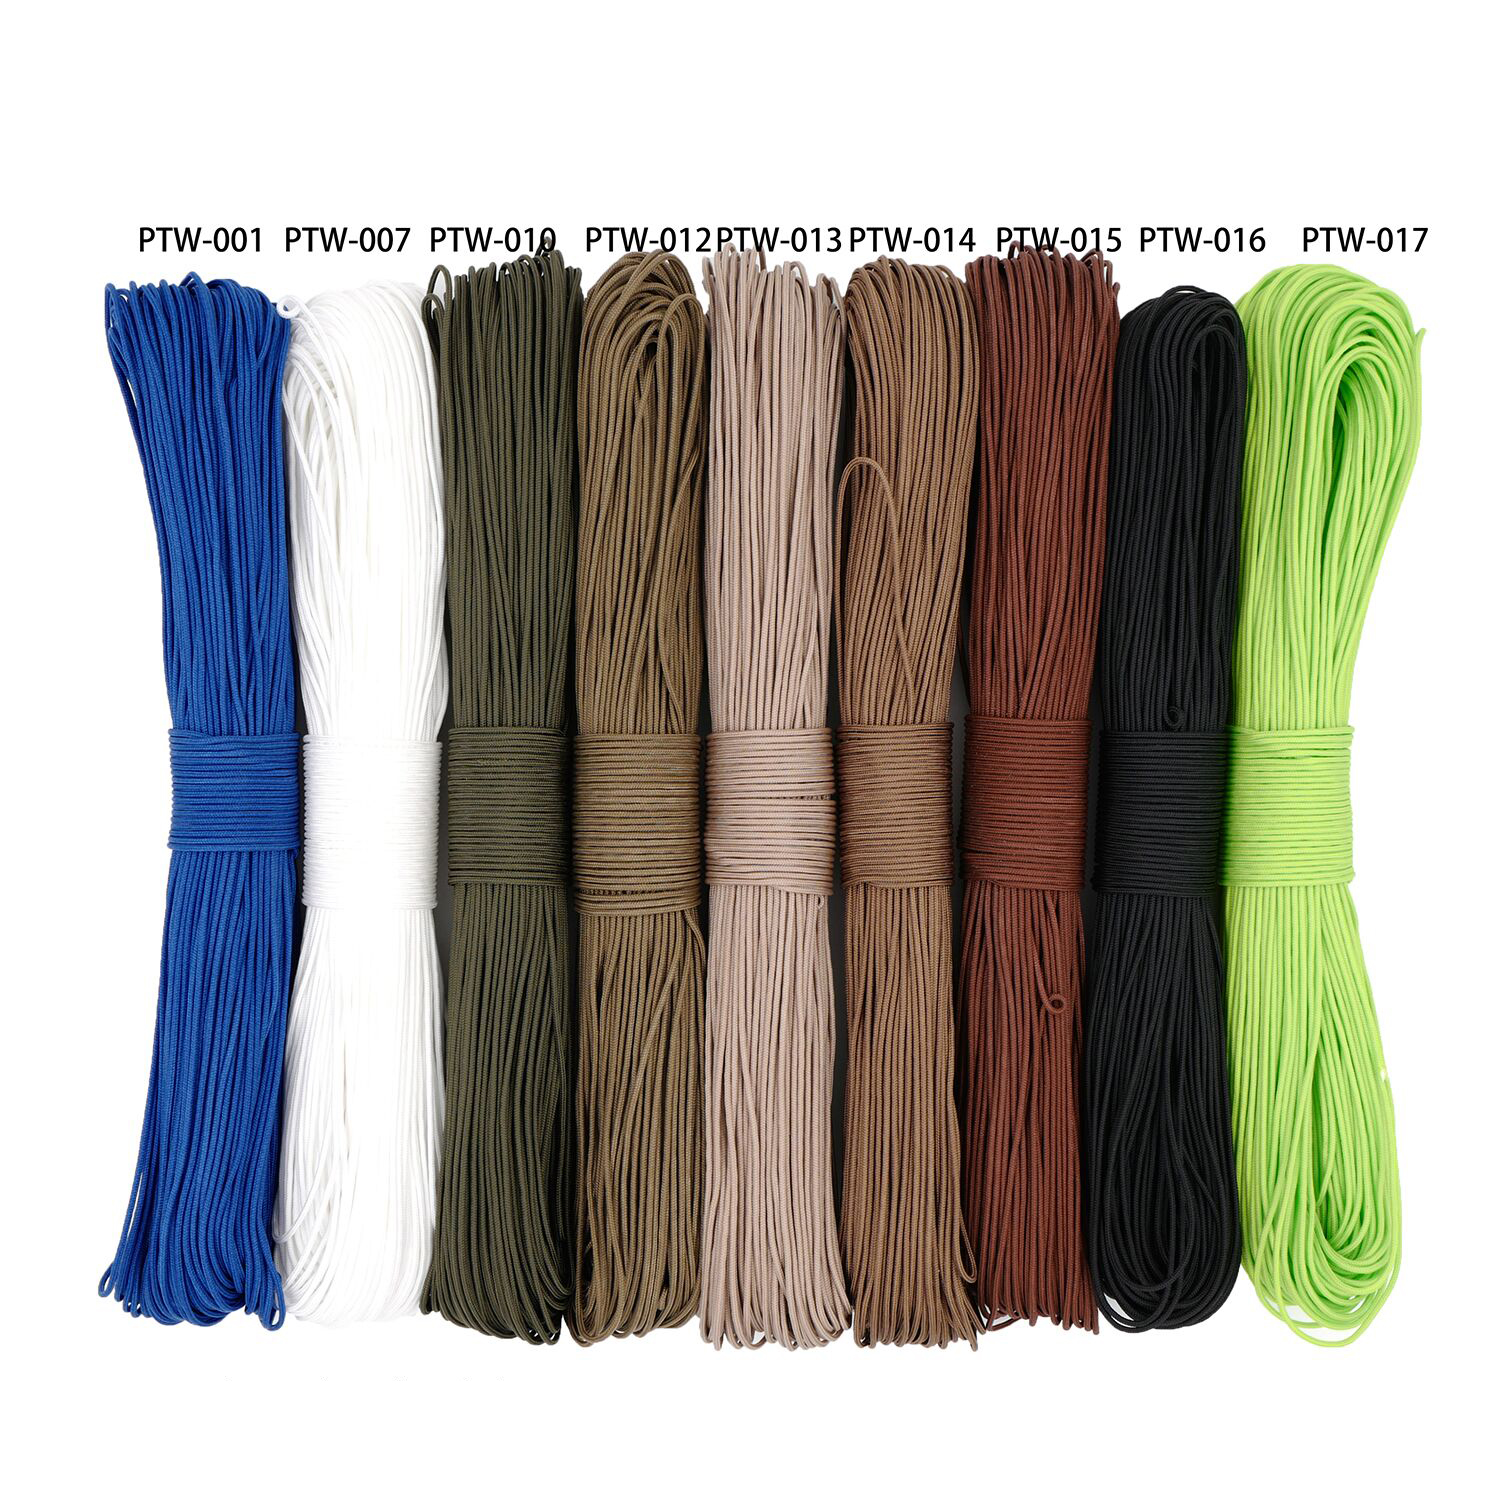 New Mil Spec Type I 3 Strand Core 300 Feet (100m) Outdoor Survival Parachute Cord Lanyard Paracord 2mm Diameter Micro Cord